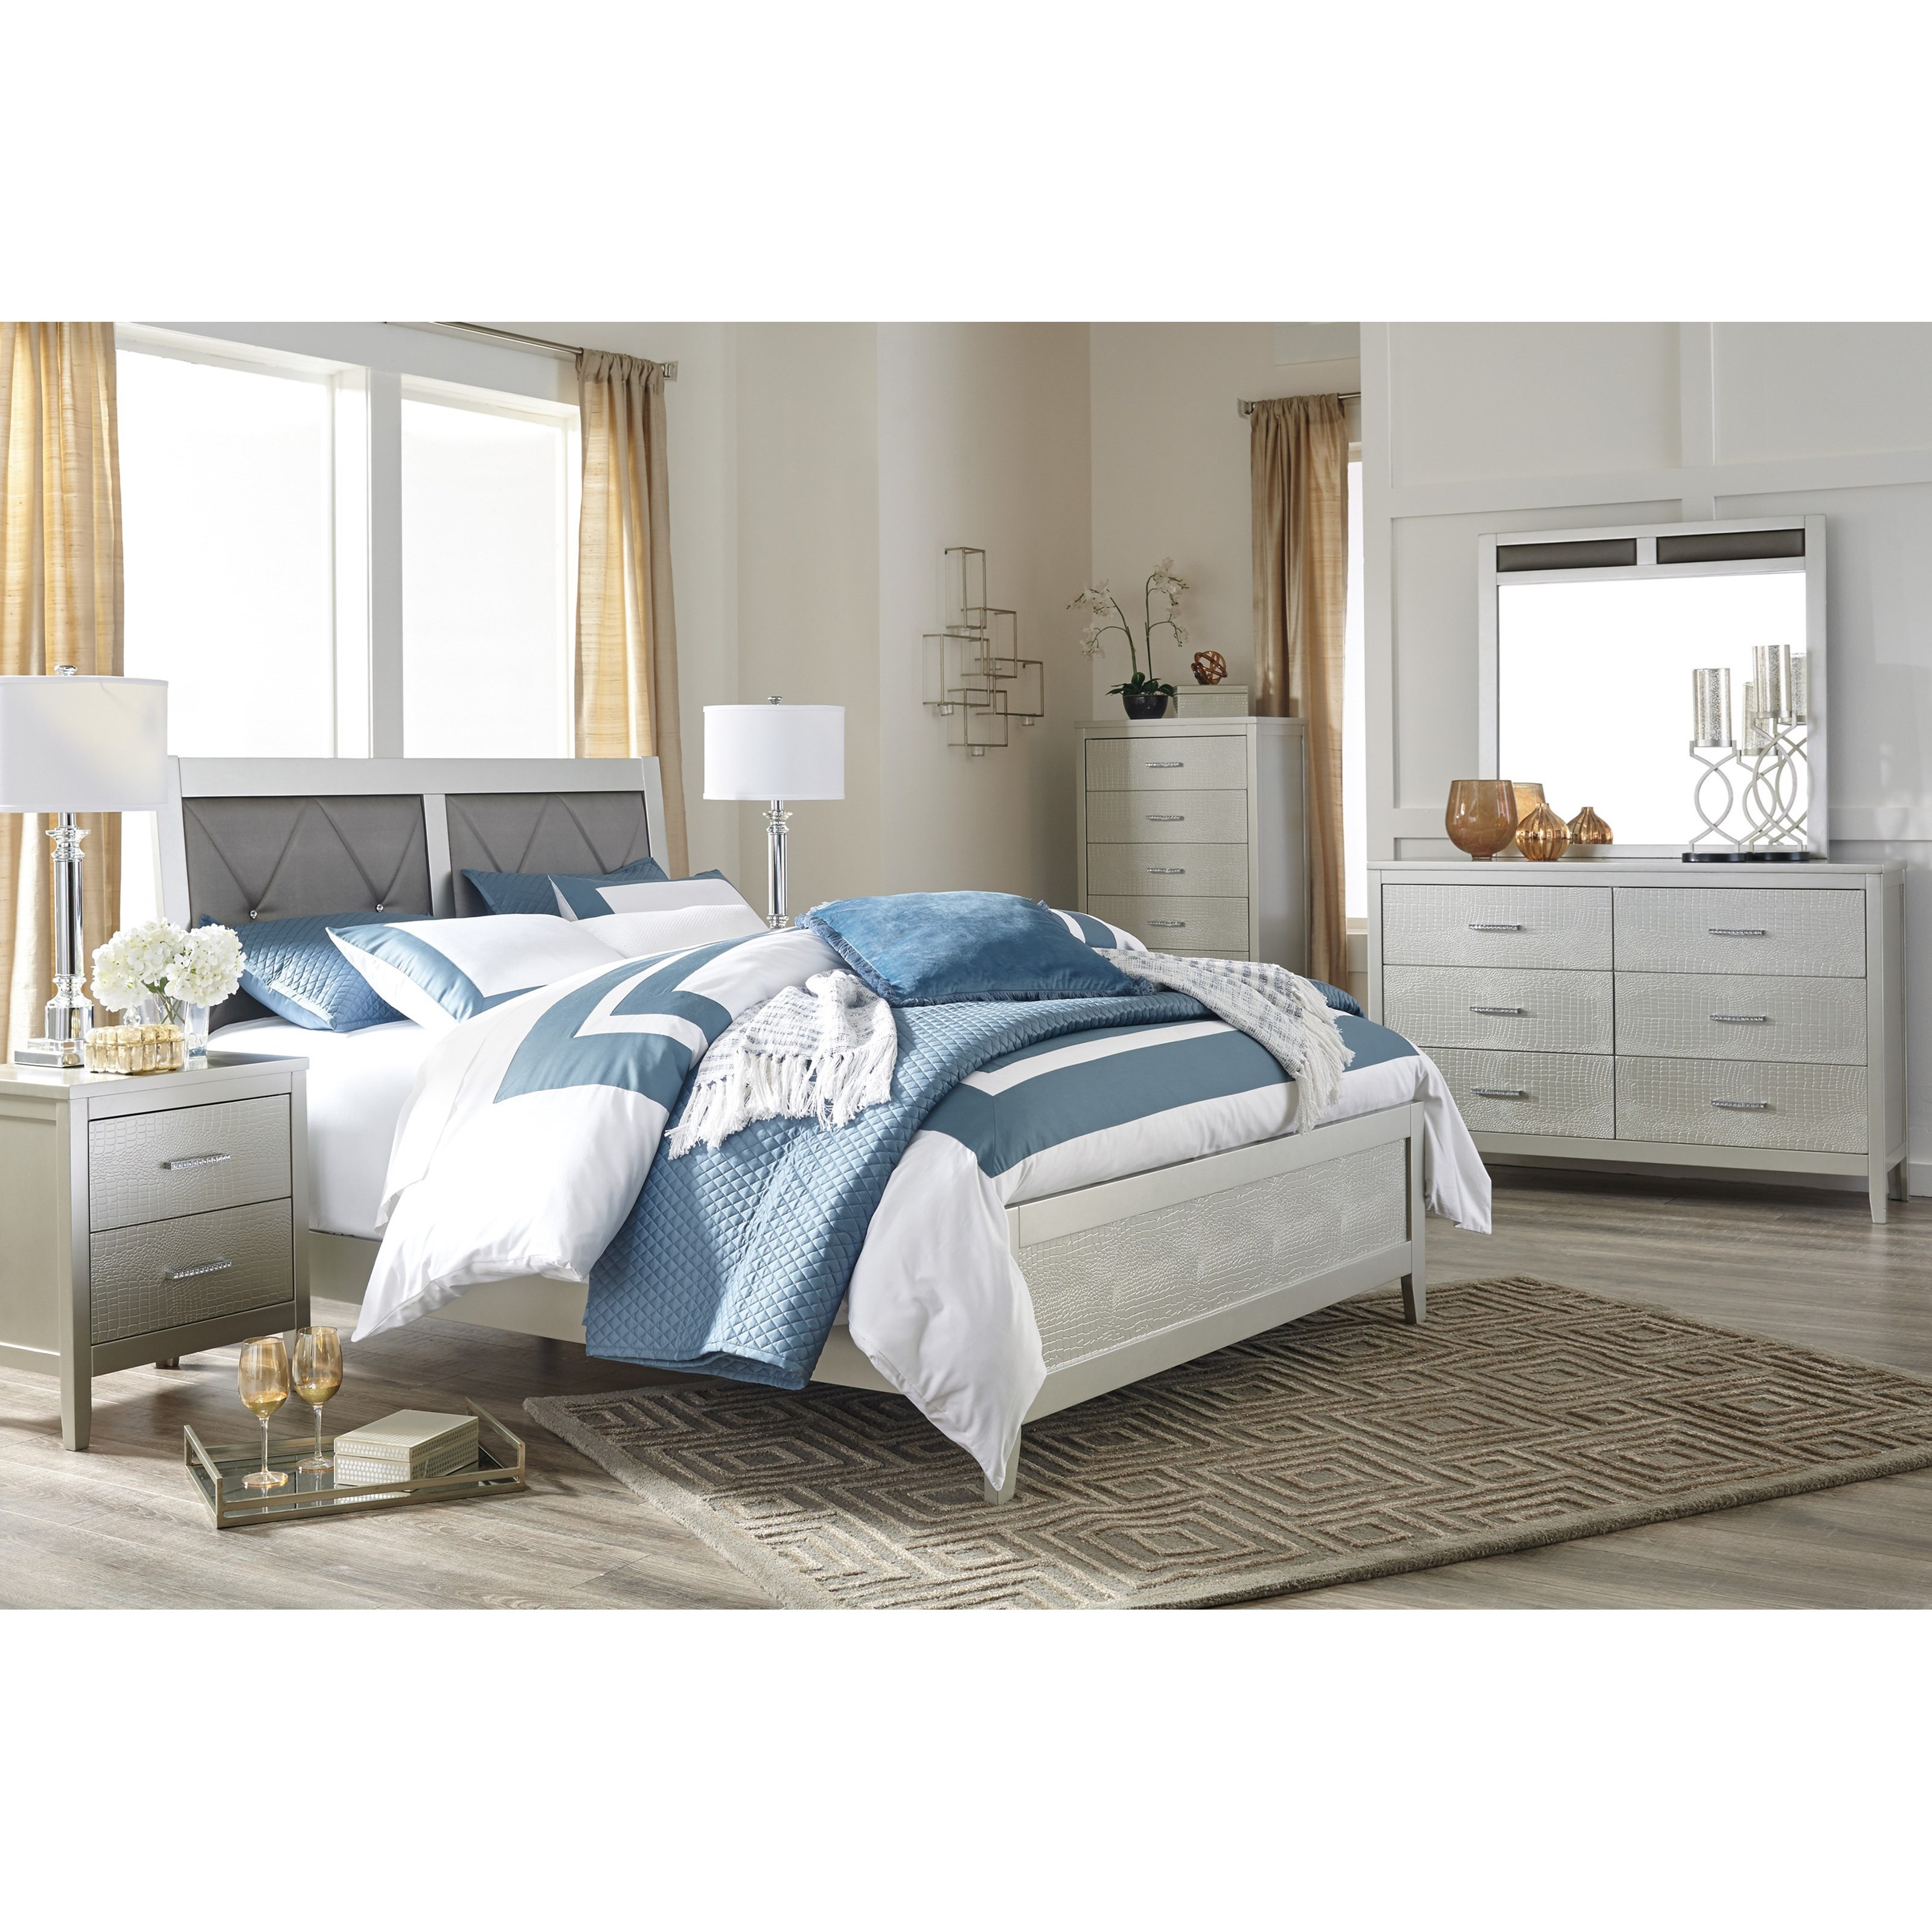 Signature Design By Ashley Olivet Queen Bedroom Group Value City Furniture Bedroom Groups